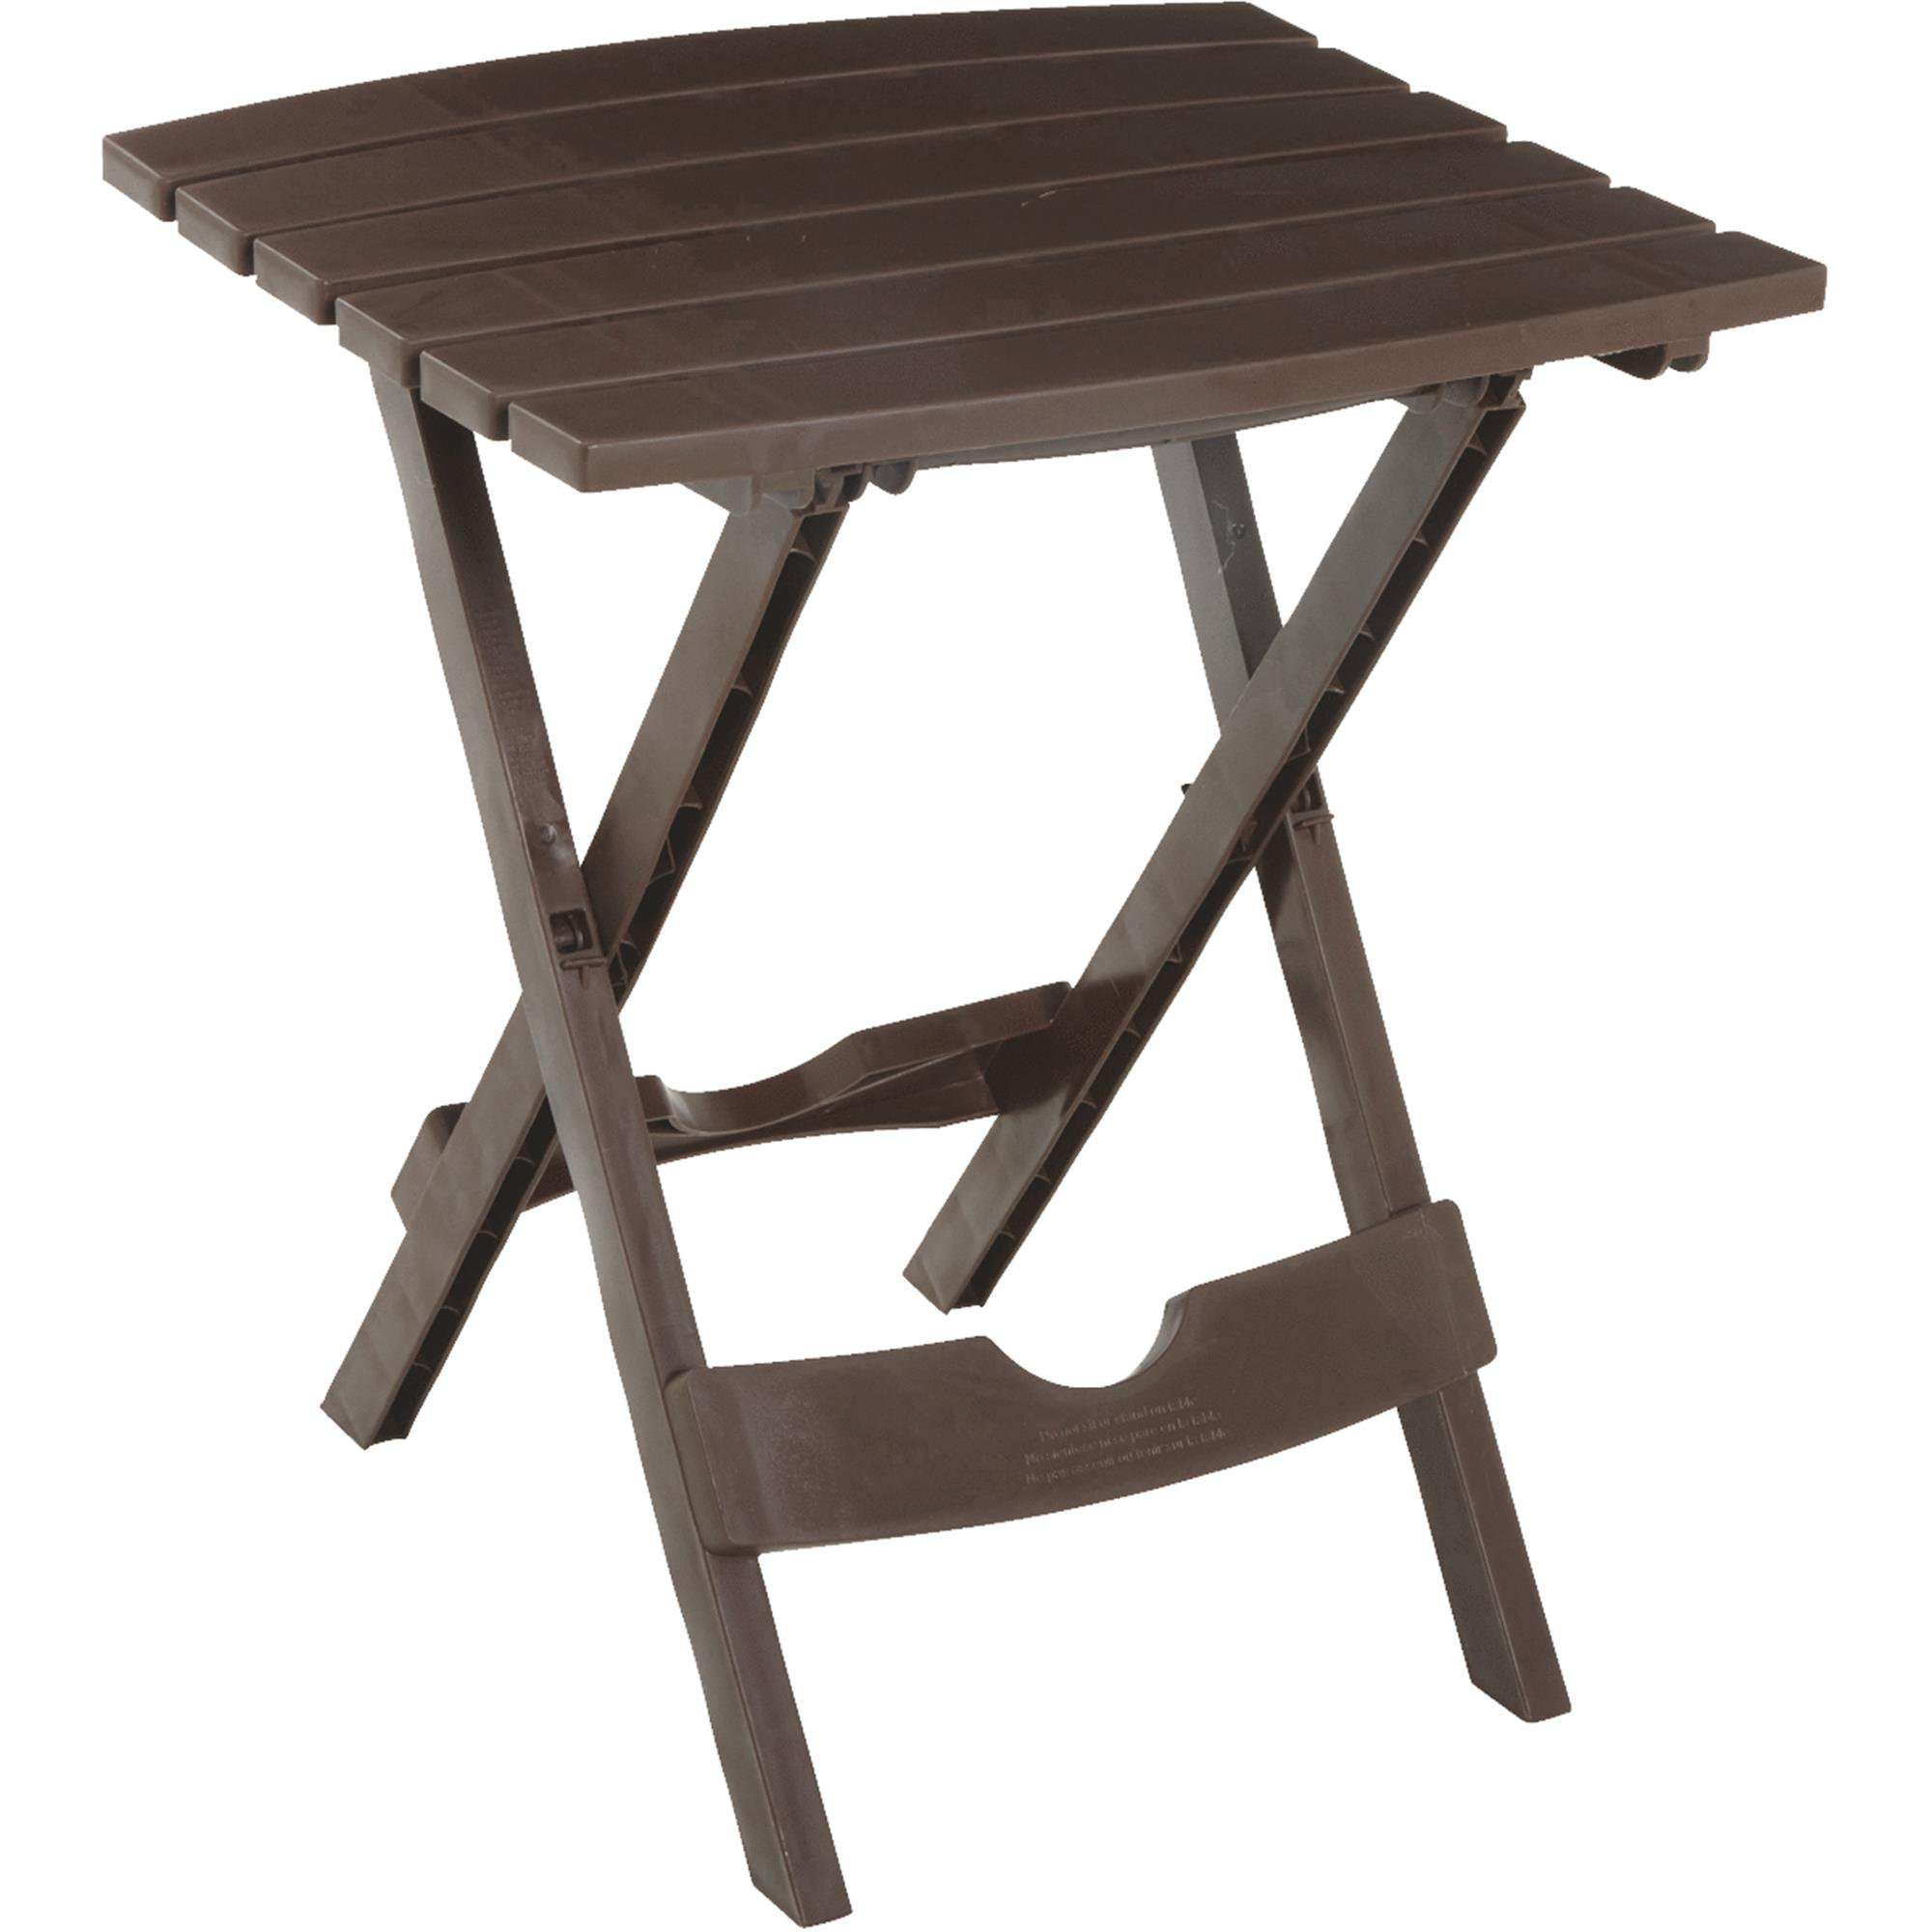 Image of Adams Manufacturing Quik-Fold Side Table, Earth